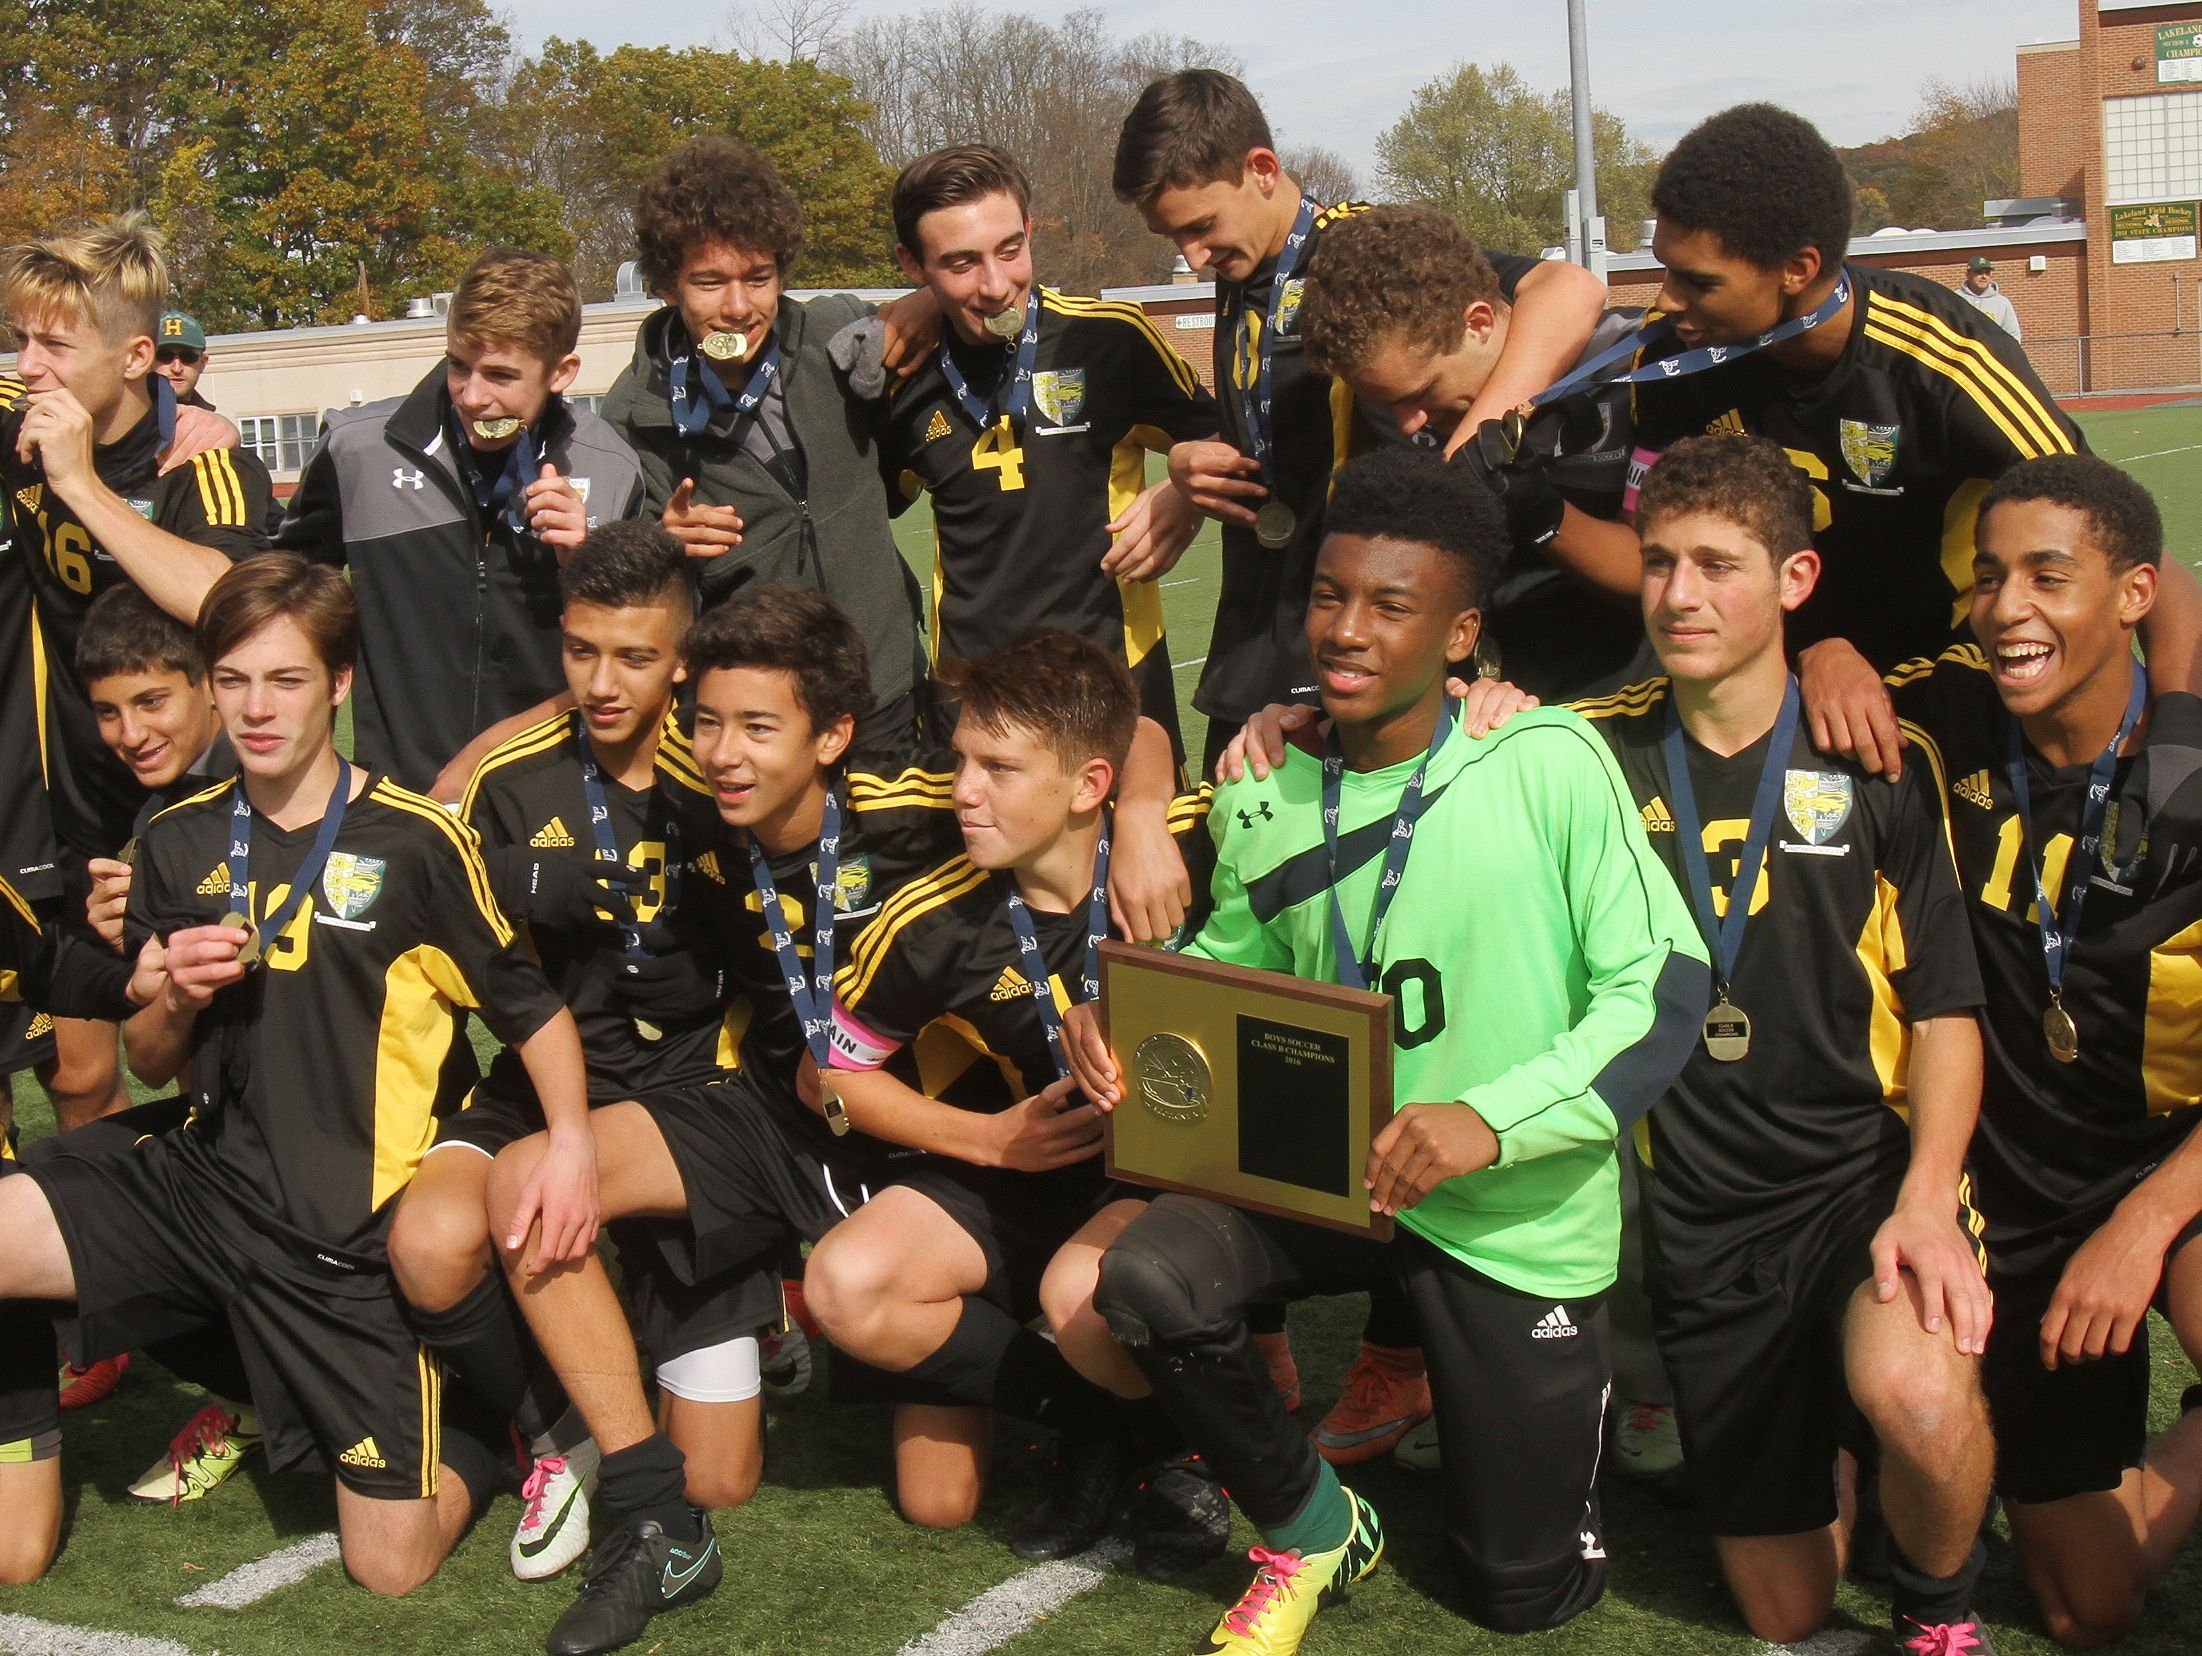 Hastings players celebrate with the Section 1 plaque after defeating Rye Neck 1-0 in the boys soccer Section 1 Class B championship game at Lakeland High School in Shrub Oak High School Oct. 29, 2016. Hastings won the game 1-0.